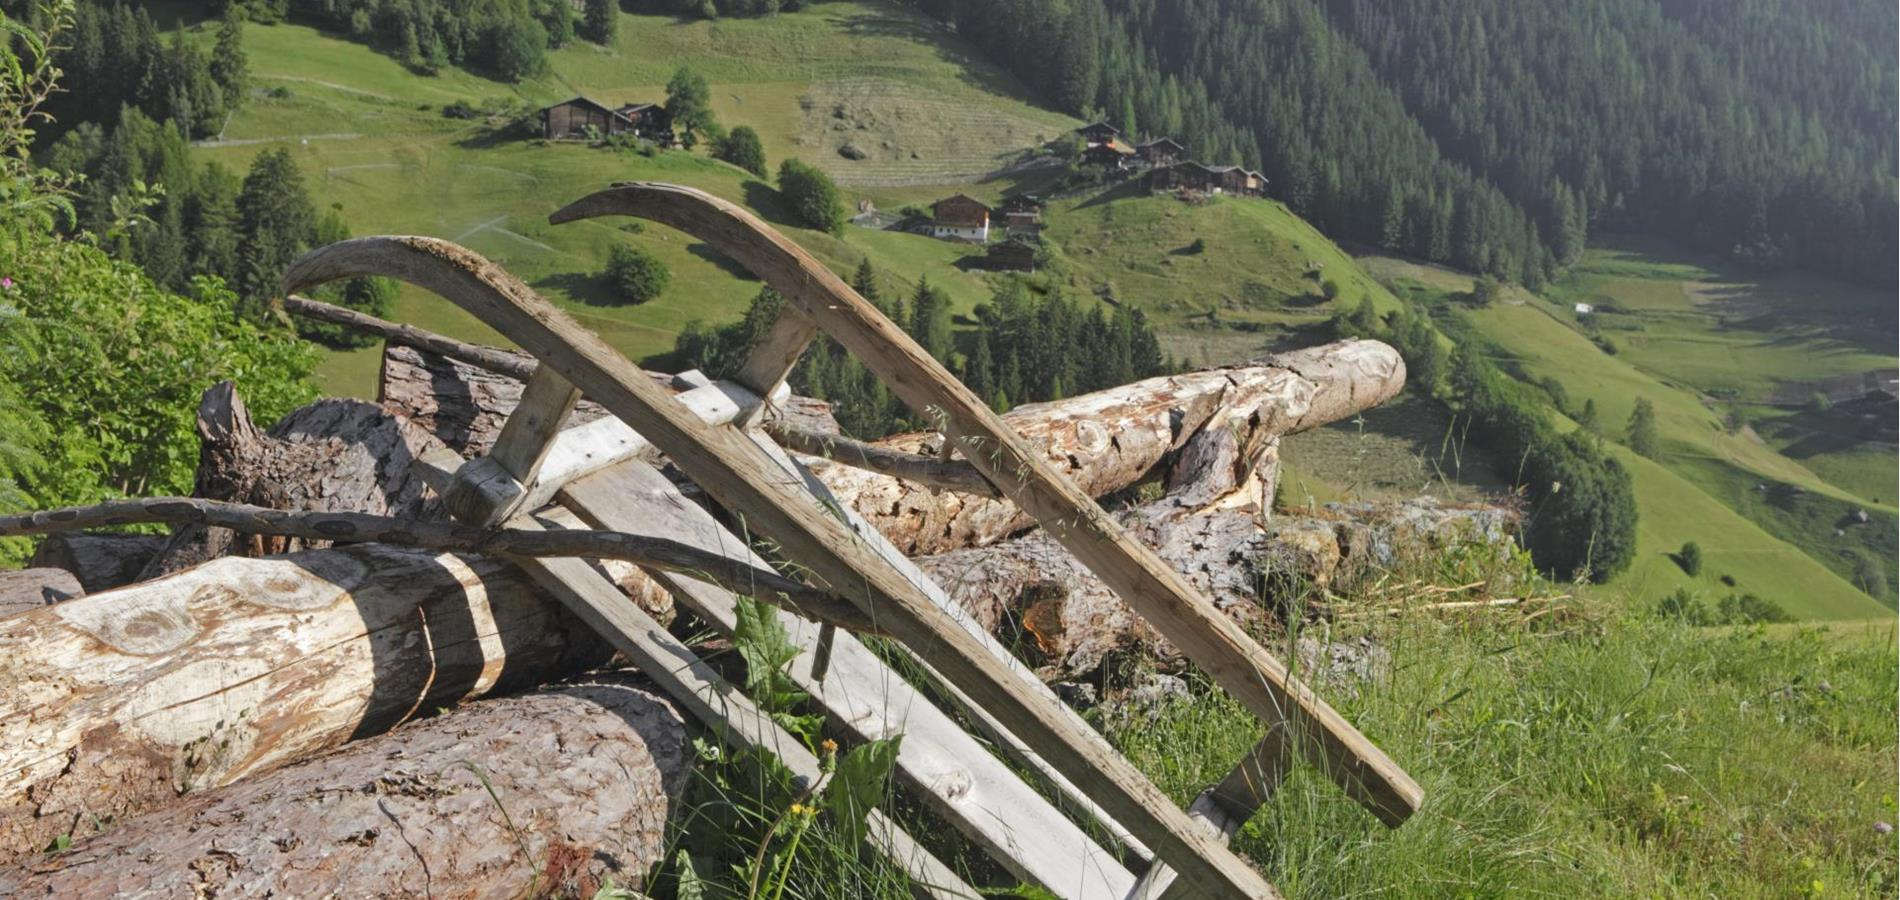 The Newsletter of the Ultental Valley